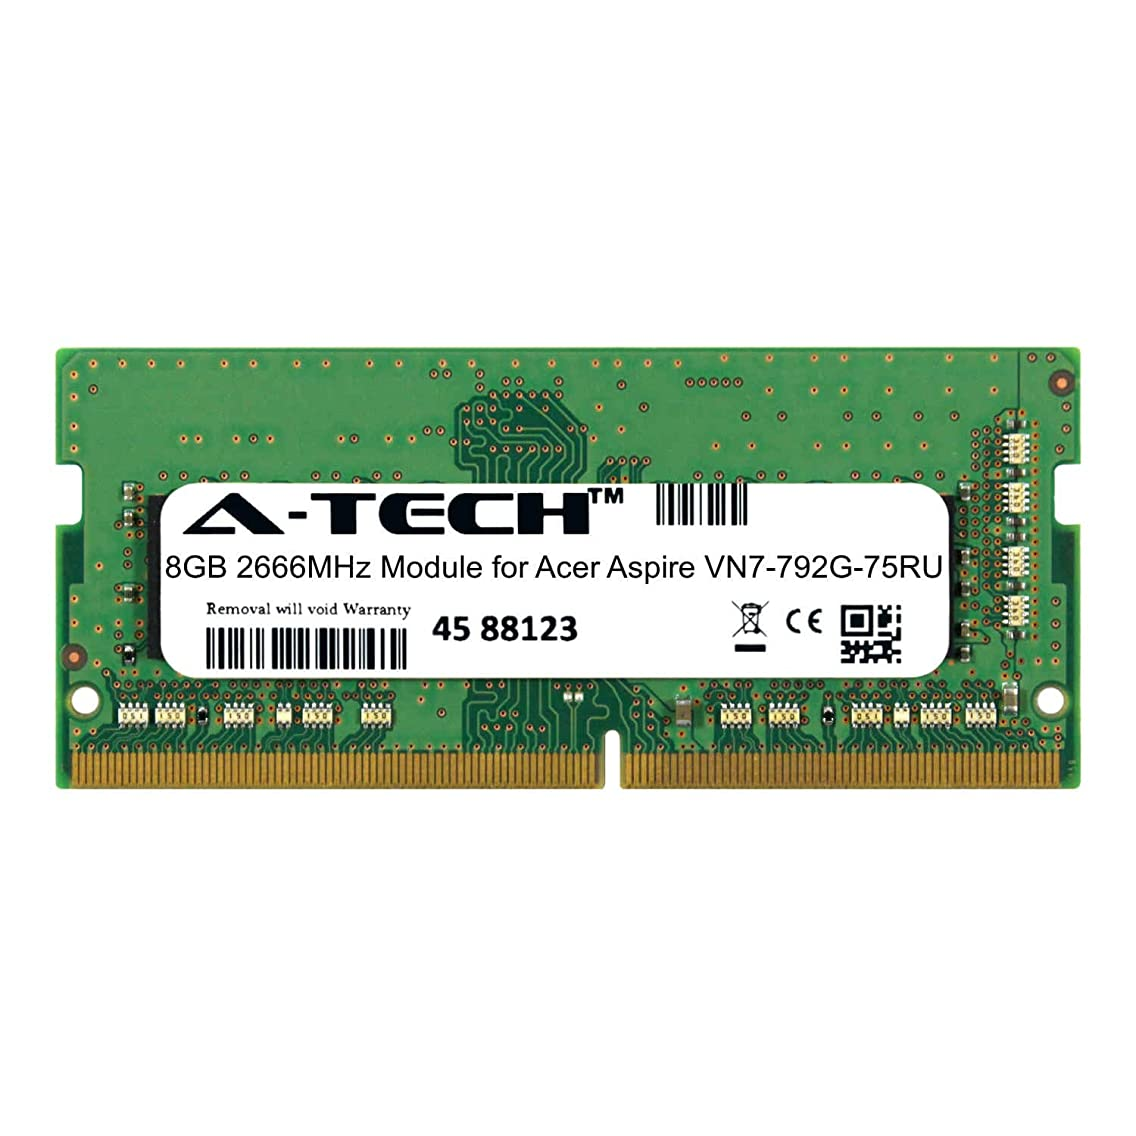 A-Tech 8GB Module for Acer Aspire VN7-792G-75RU Laptop & Notebook Compatible DDR4 2666Mhz Memory Ram (ATMS268709A25978X1)